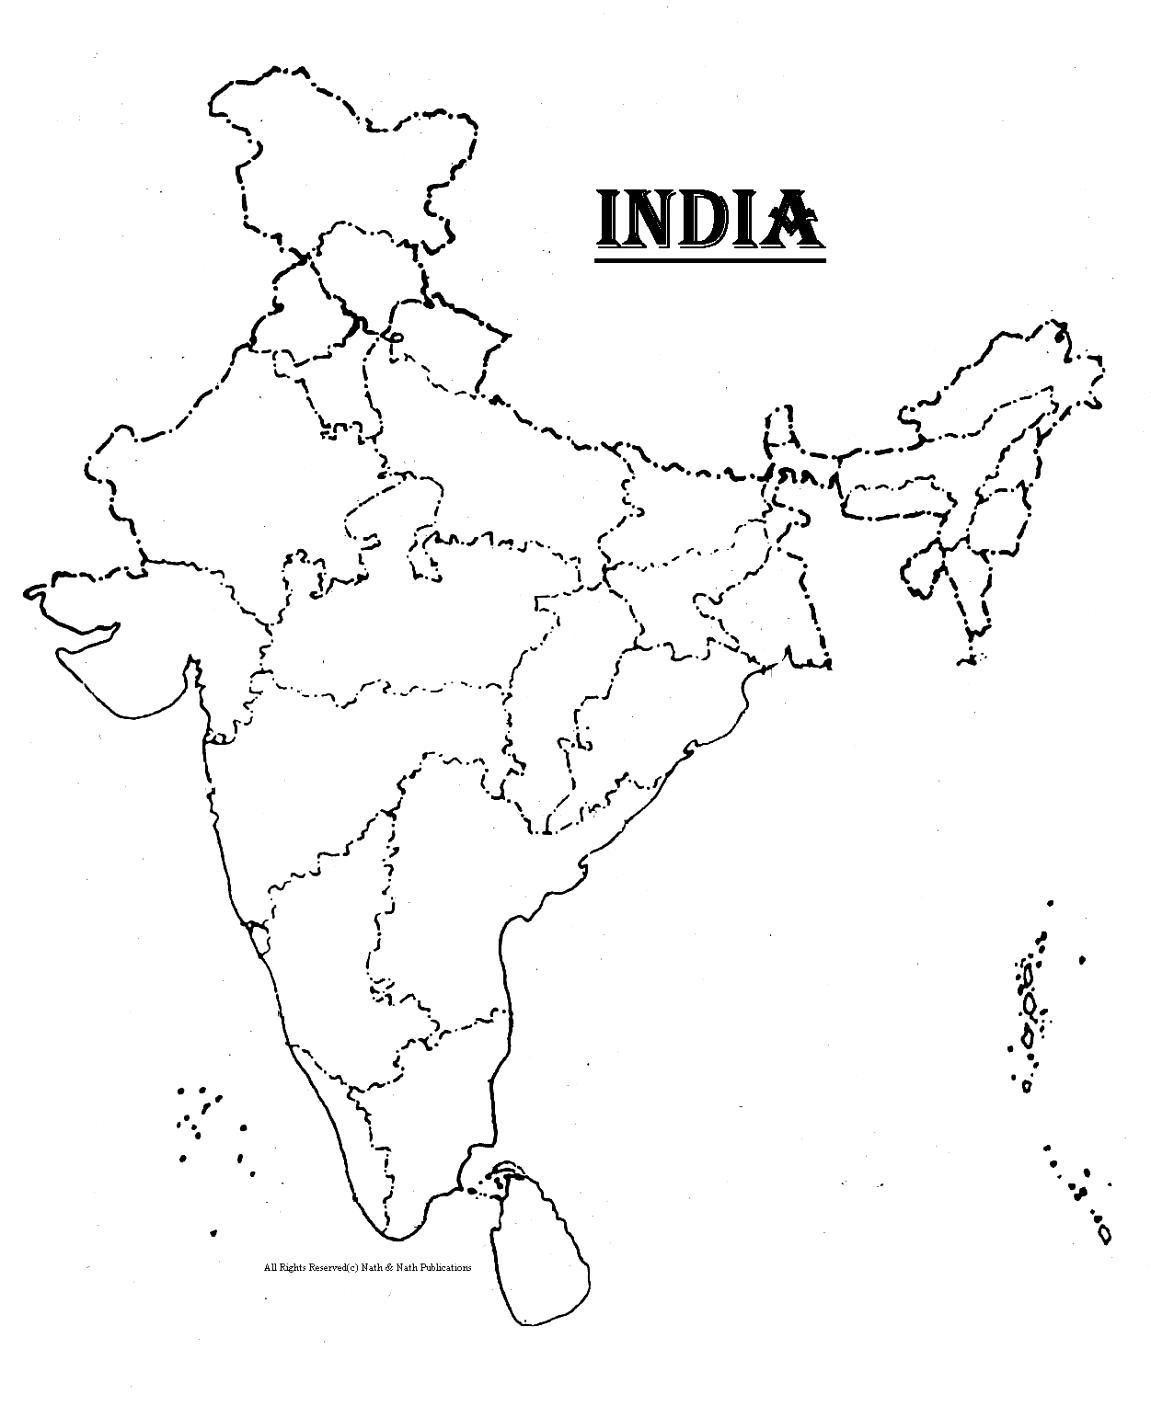 Indian Map Blank Hd Image